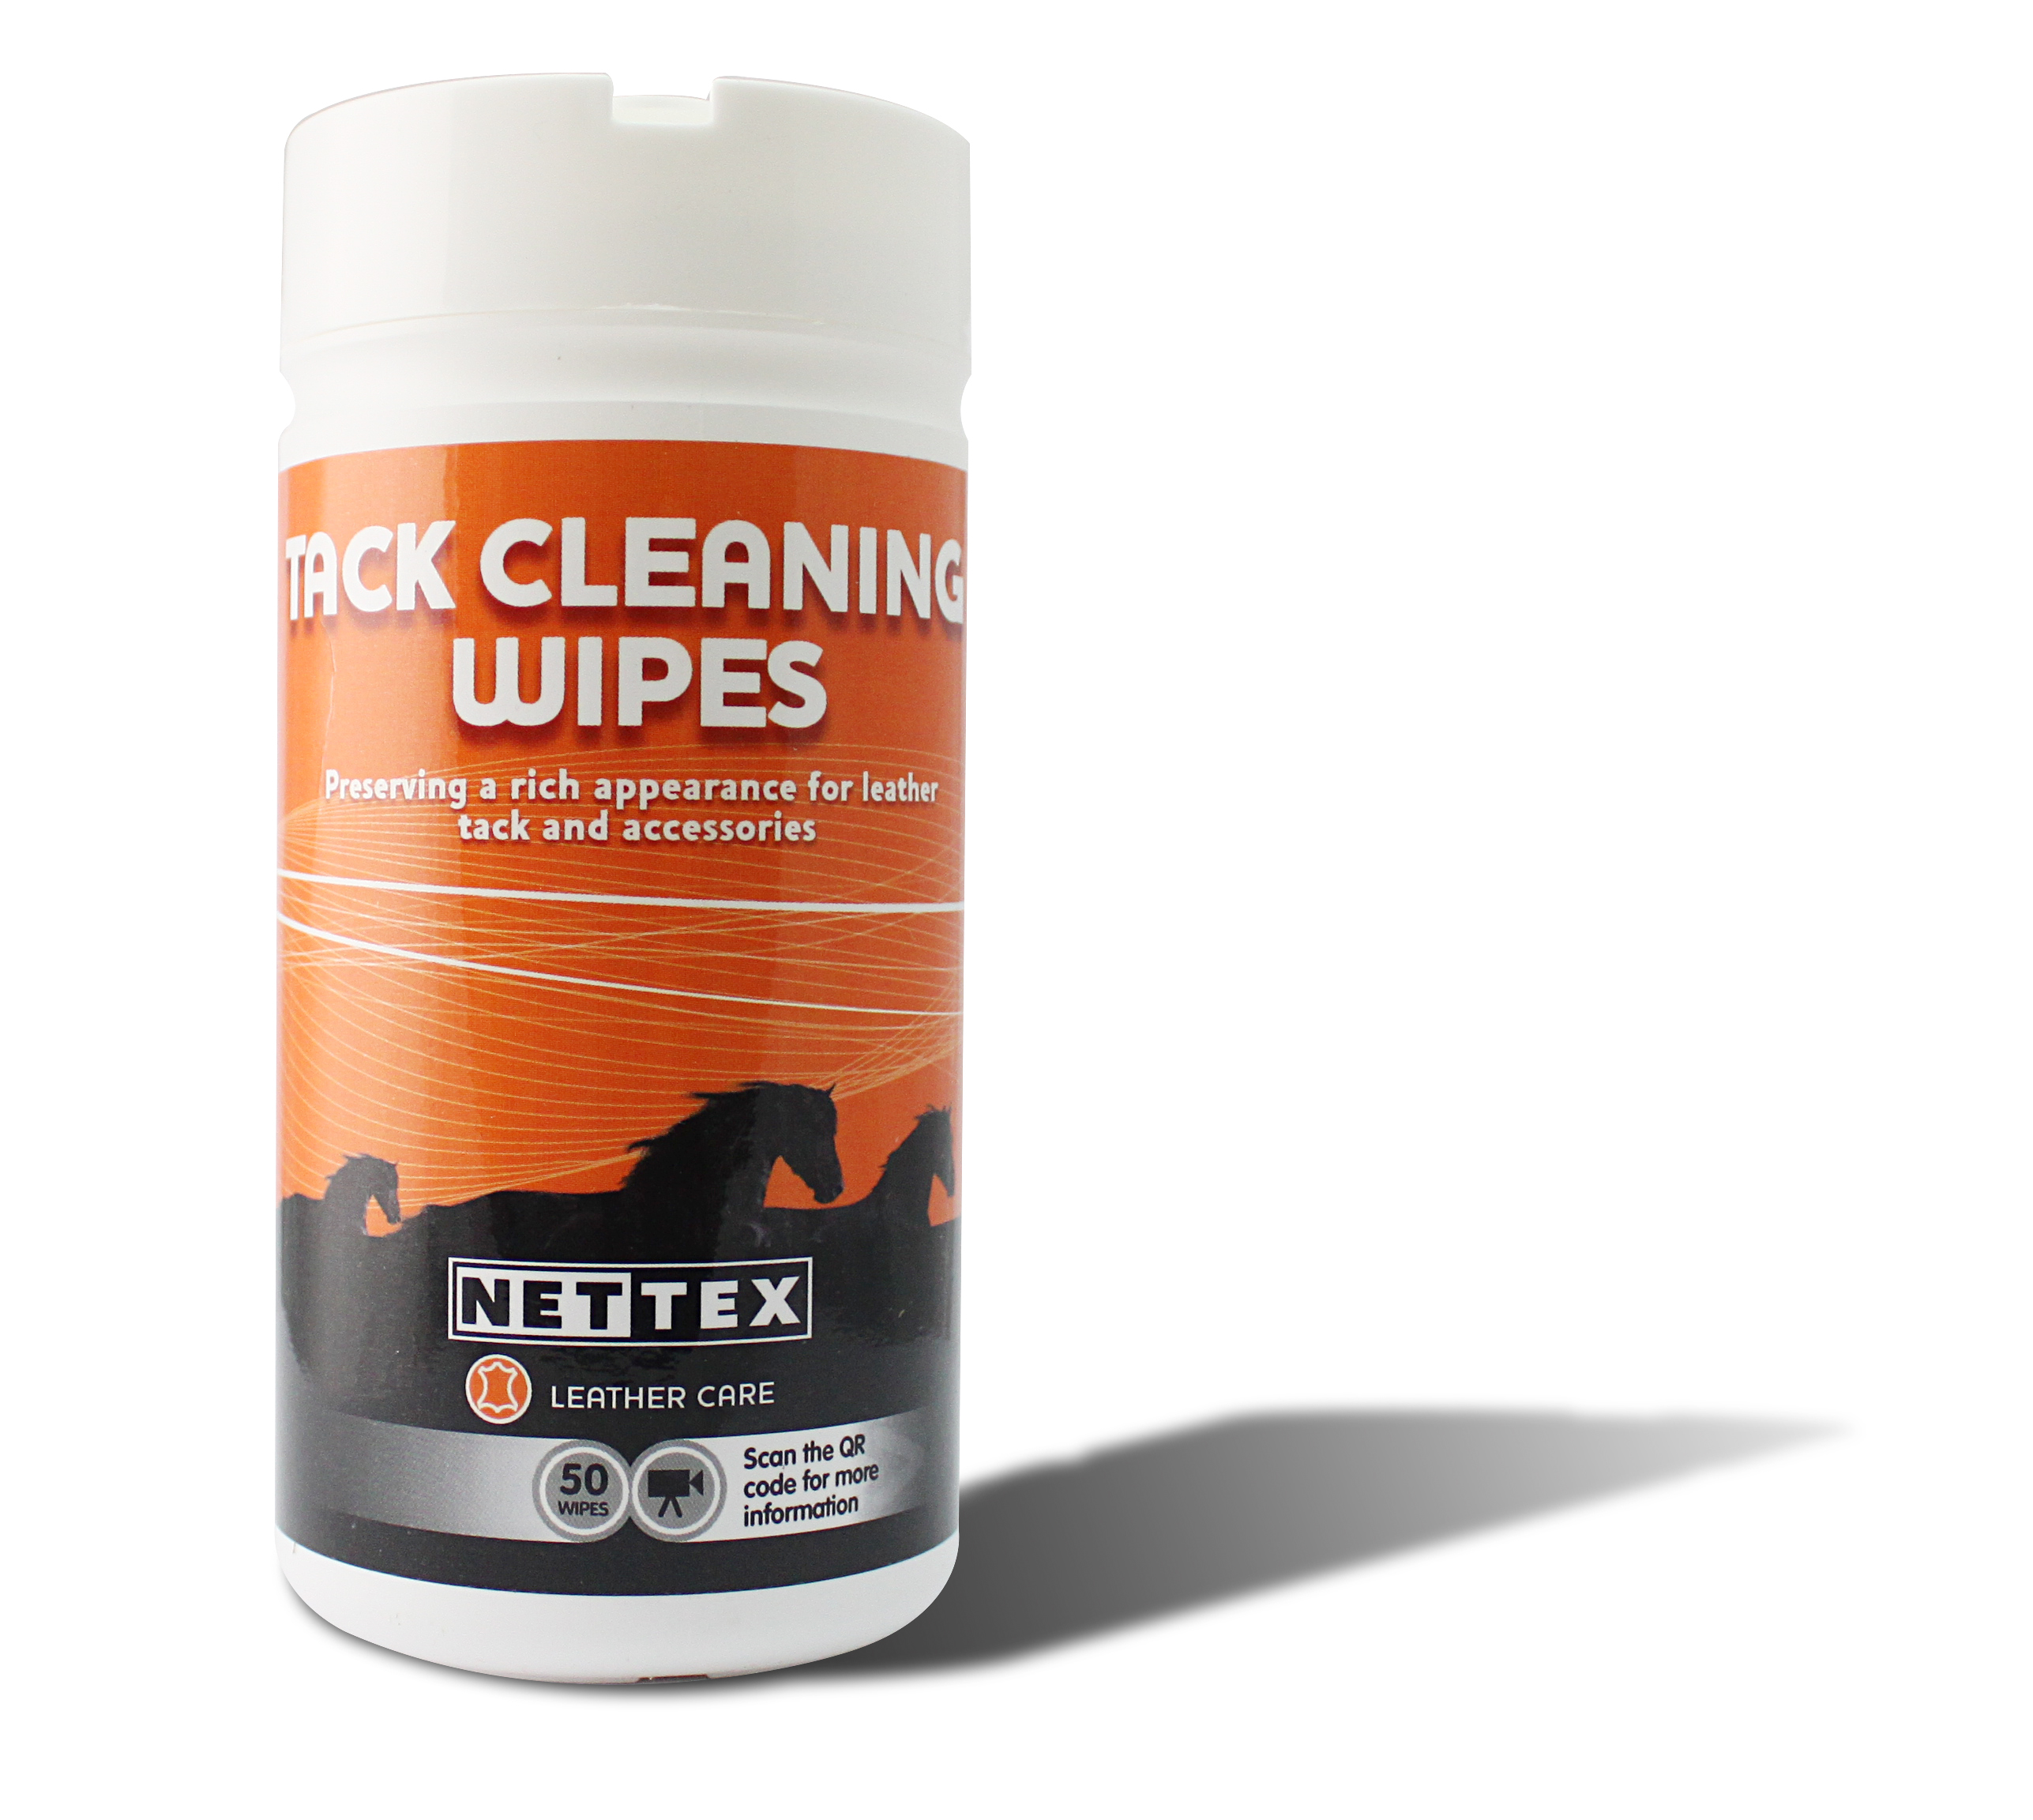 Quick Tack Wipes Nettex 50 wipes